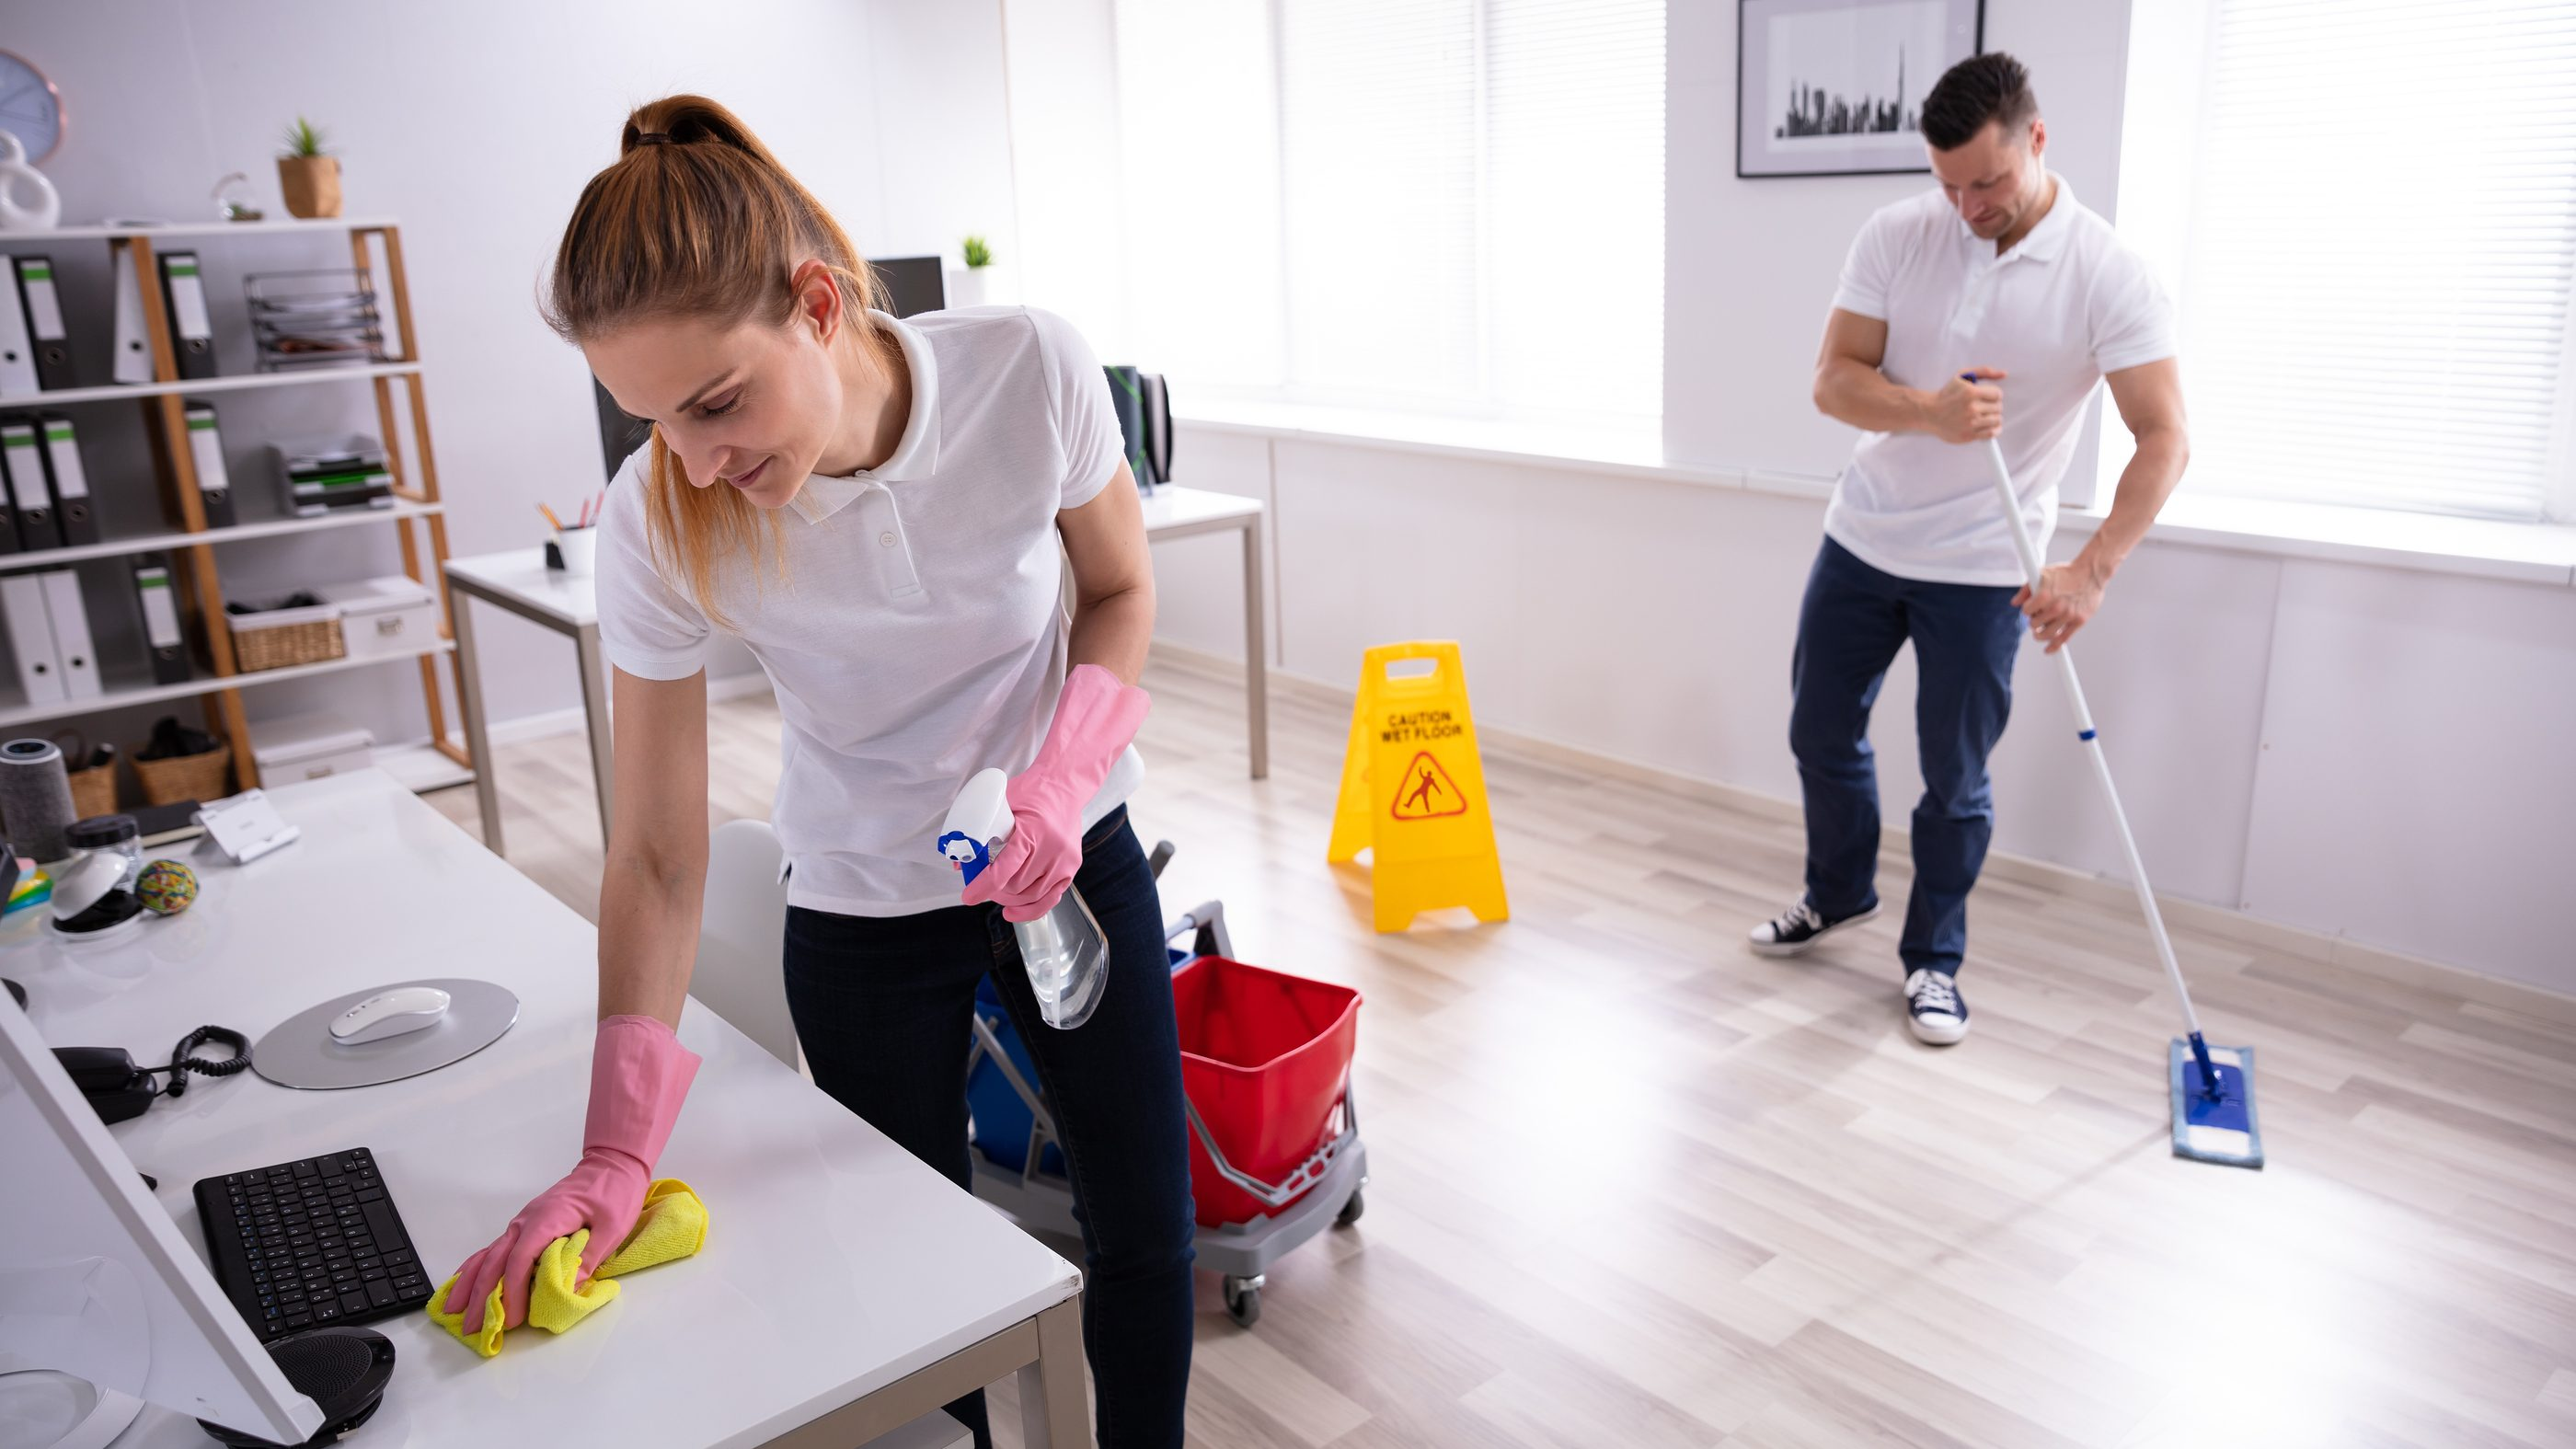 5 reasons to hire a janitorial service for your office